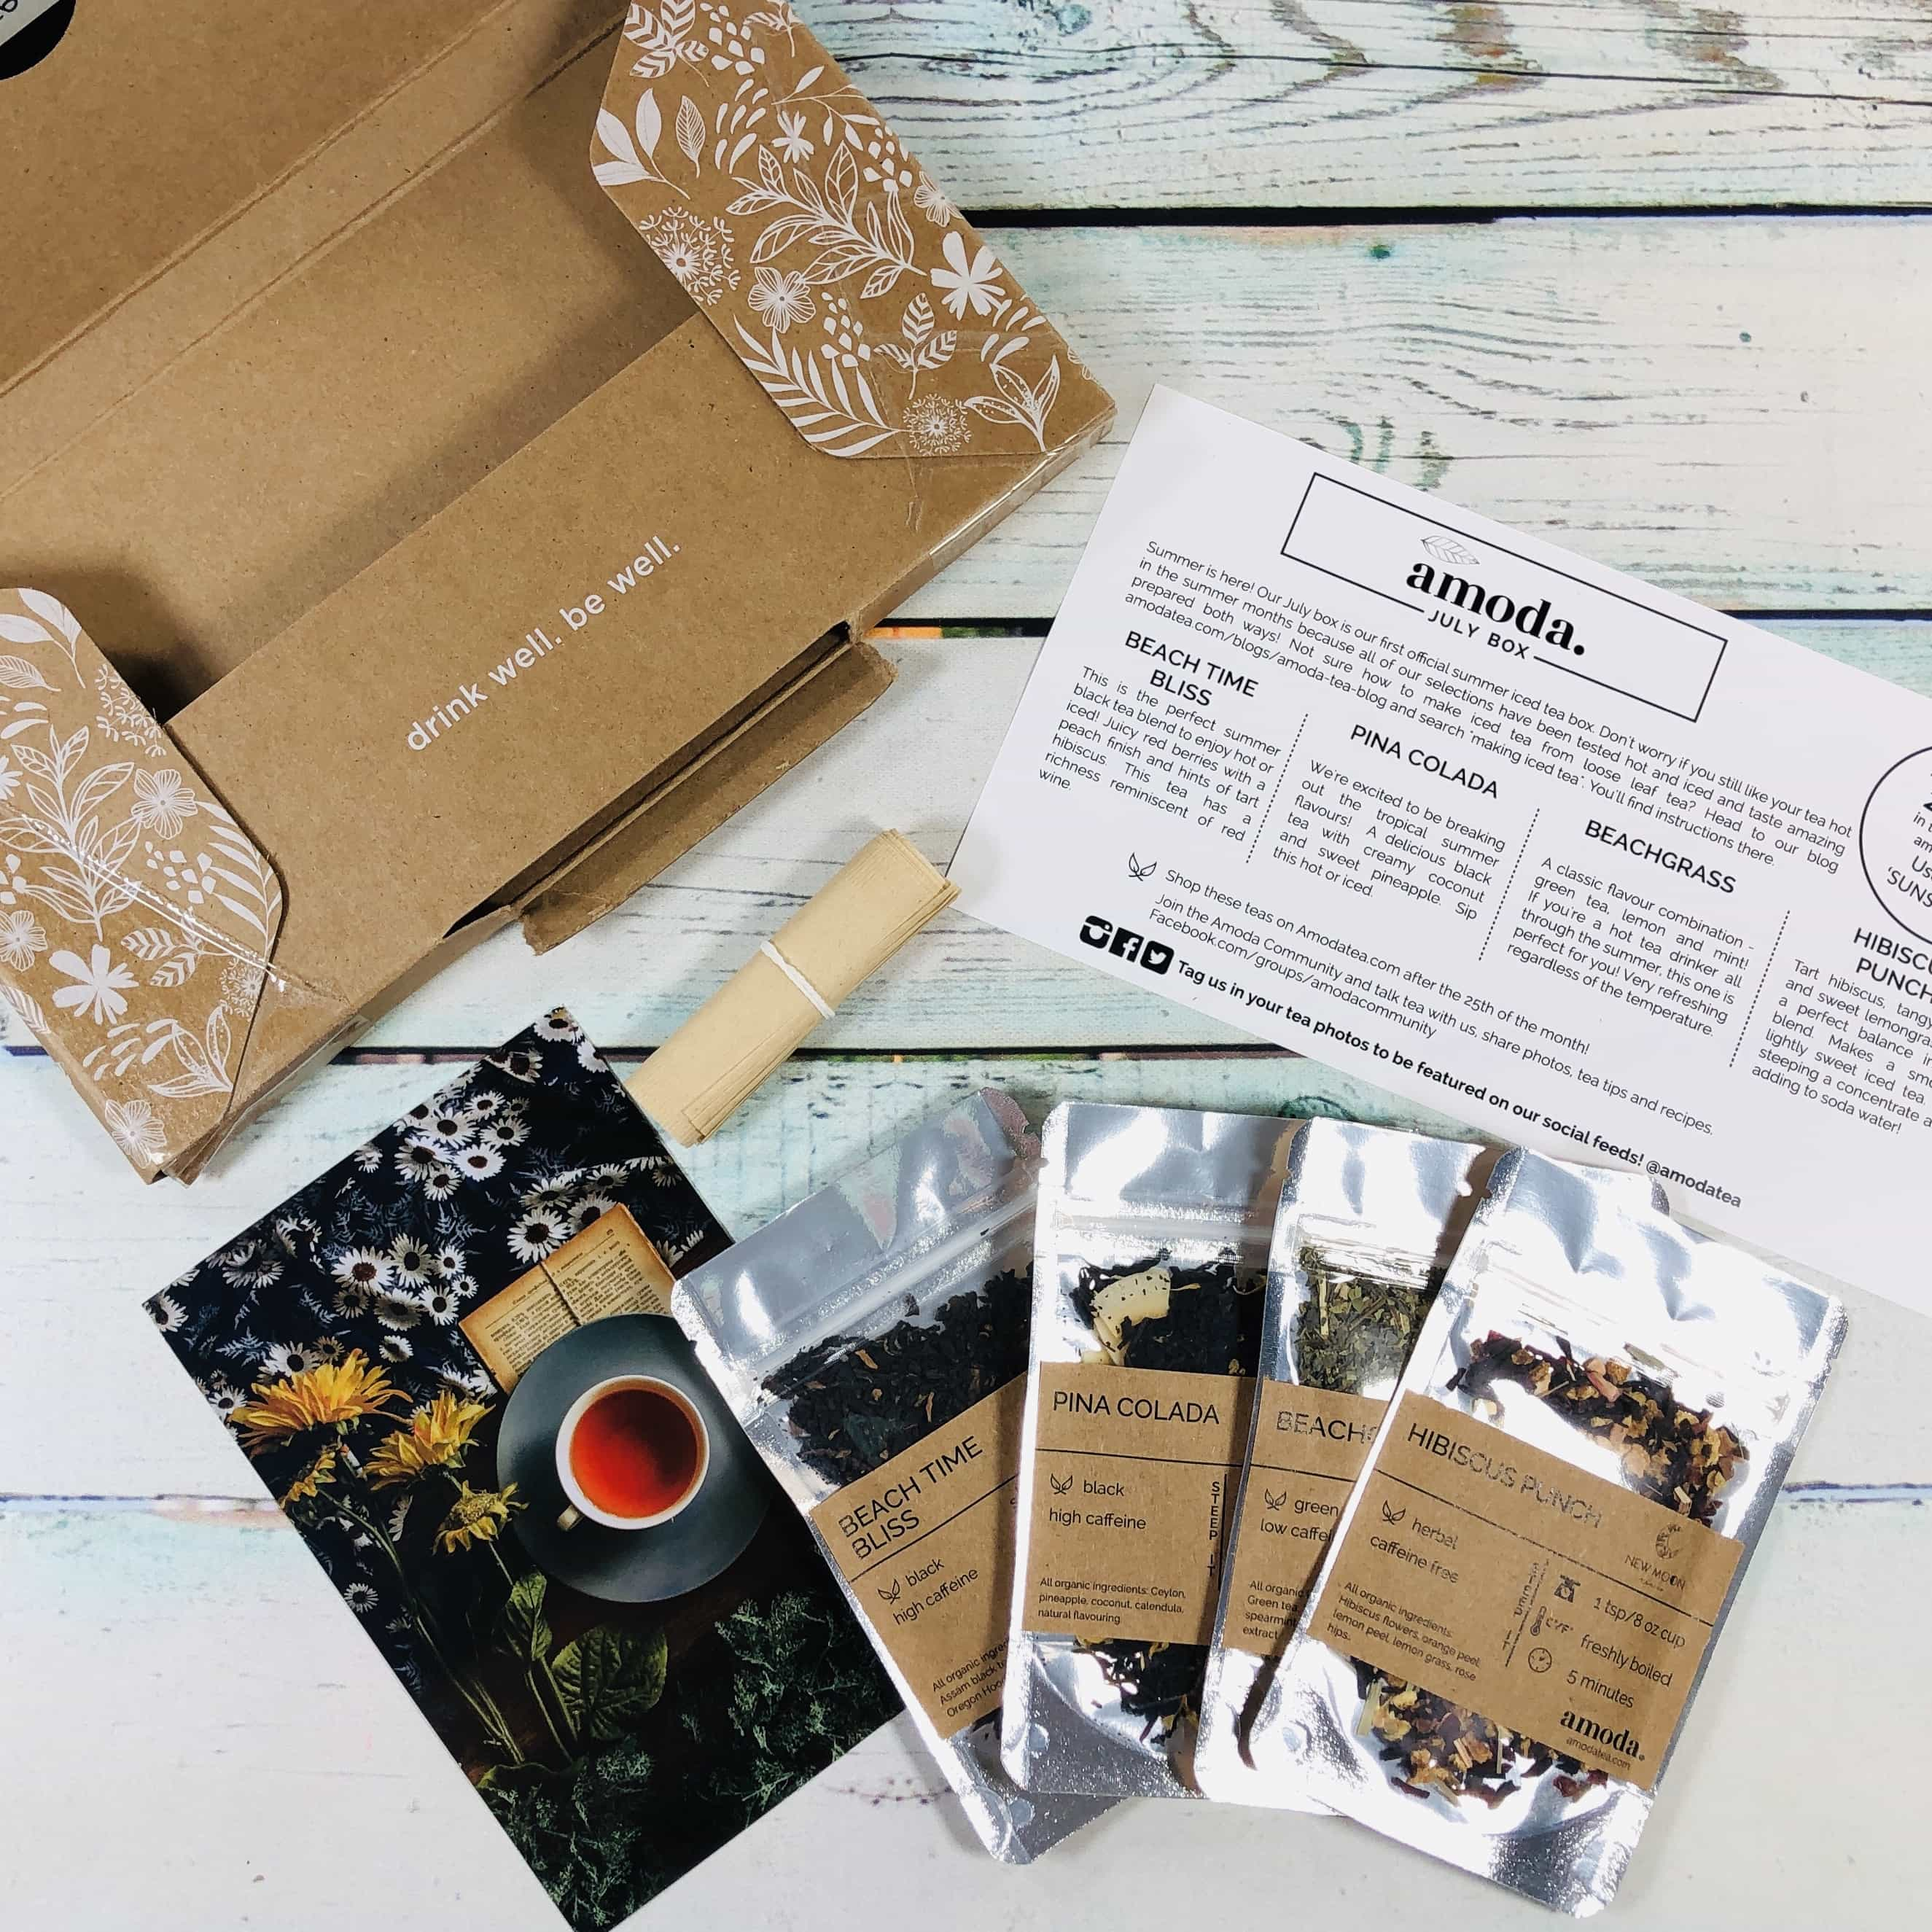 Amoda Tea July 2019 Subscription Box Review + Coupon!